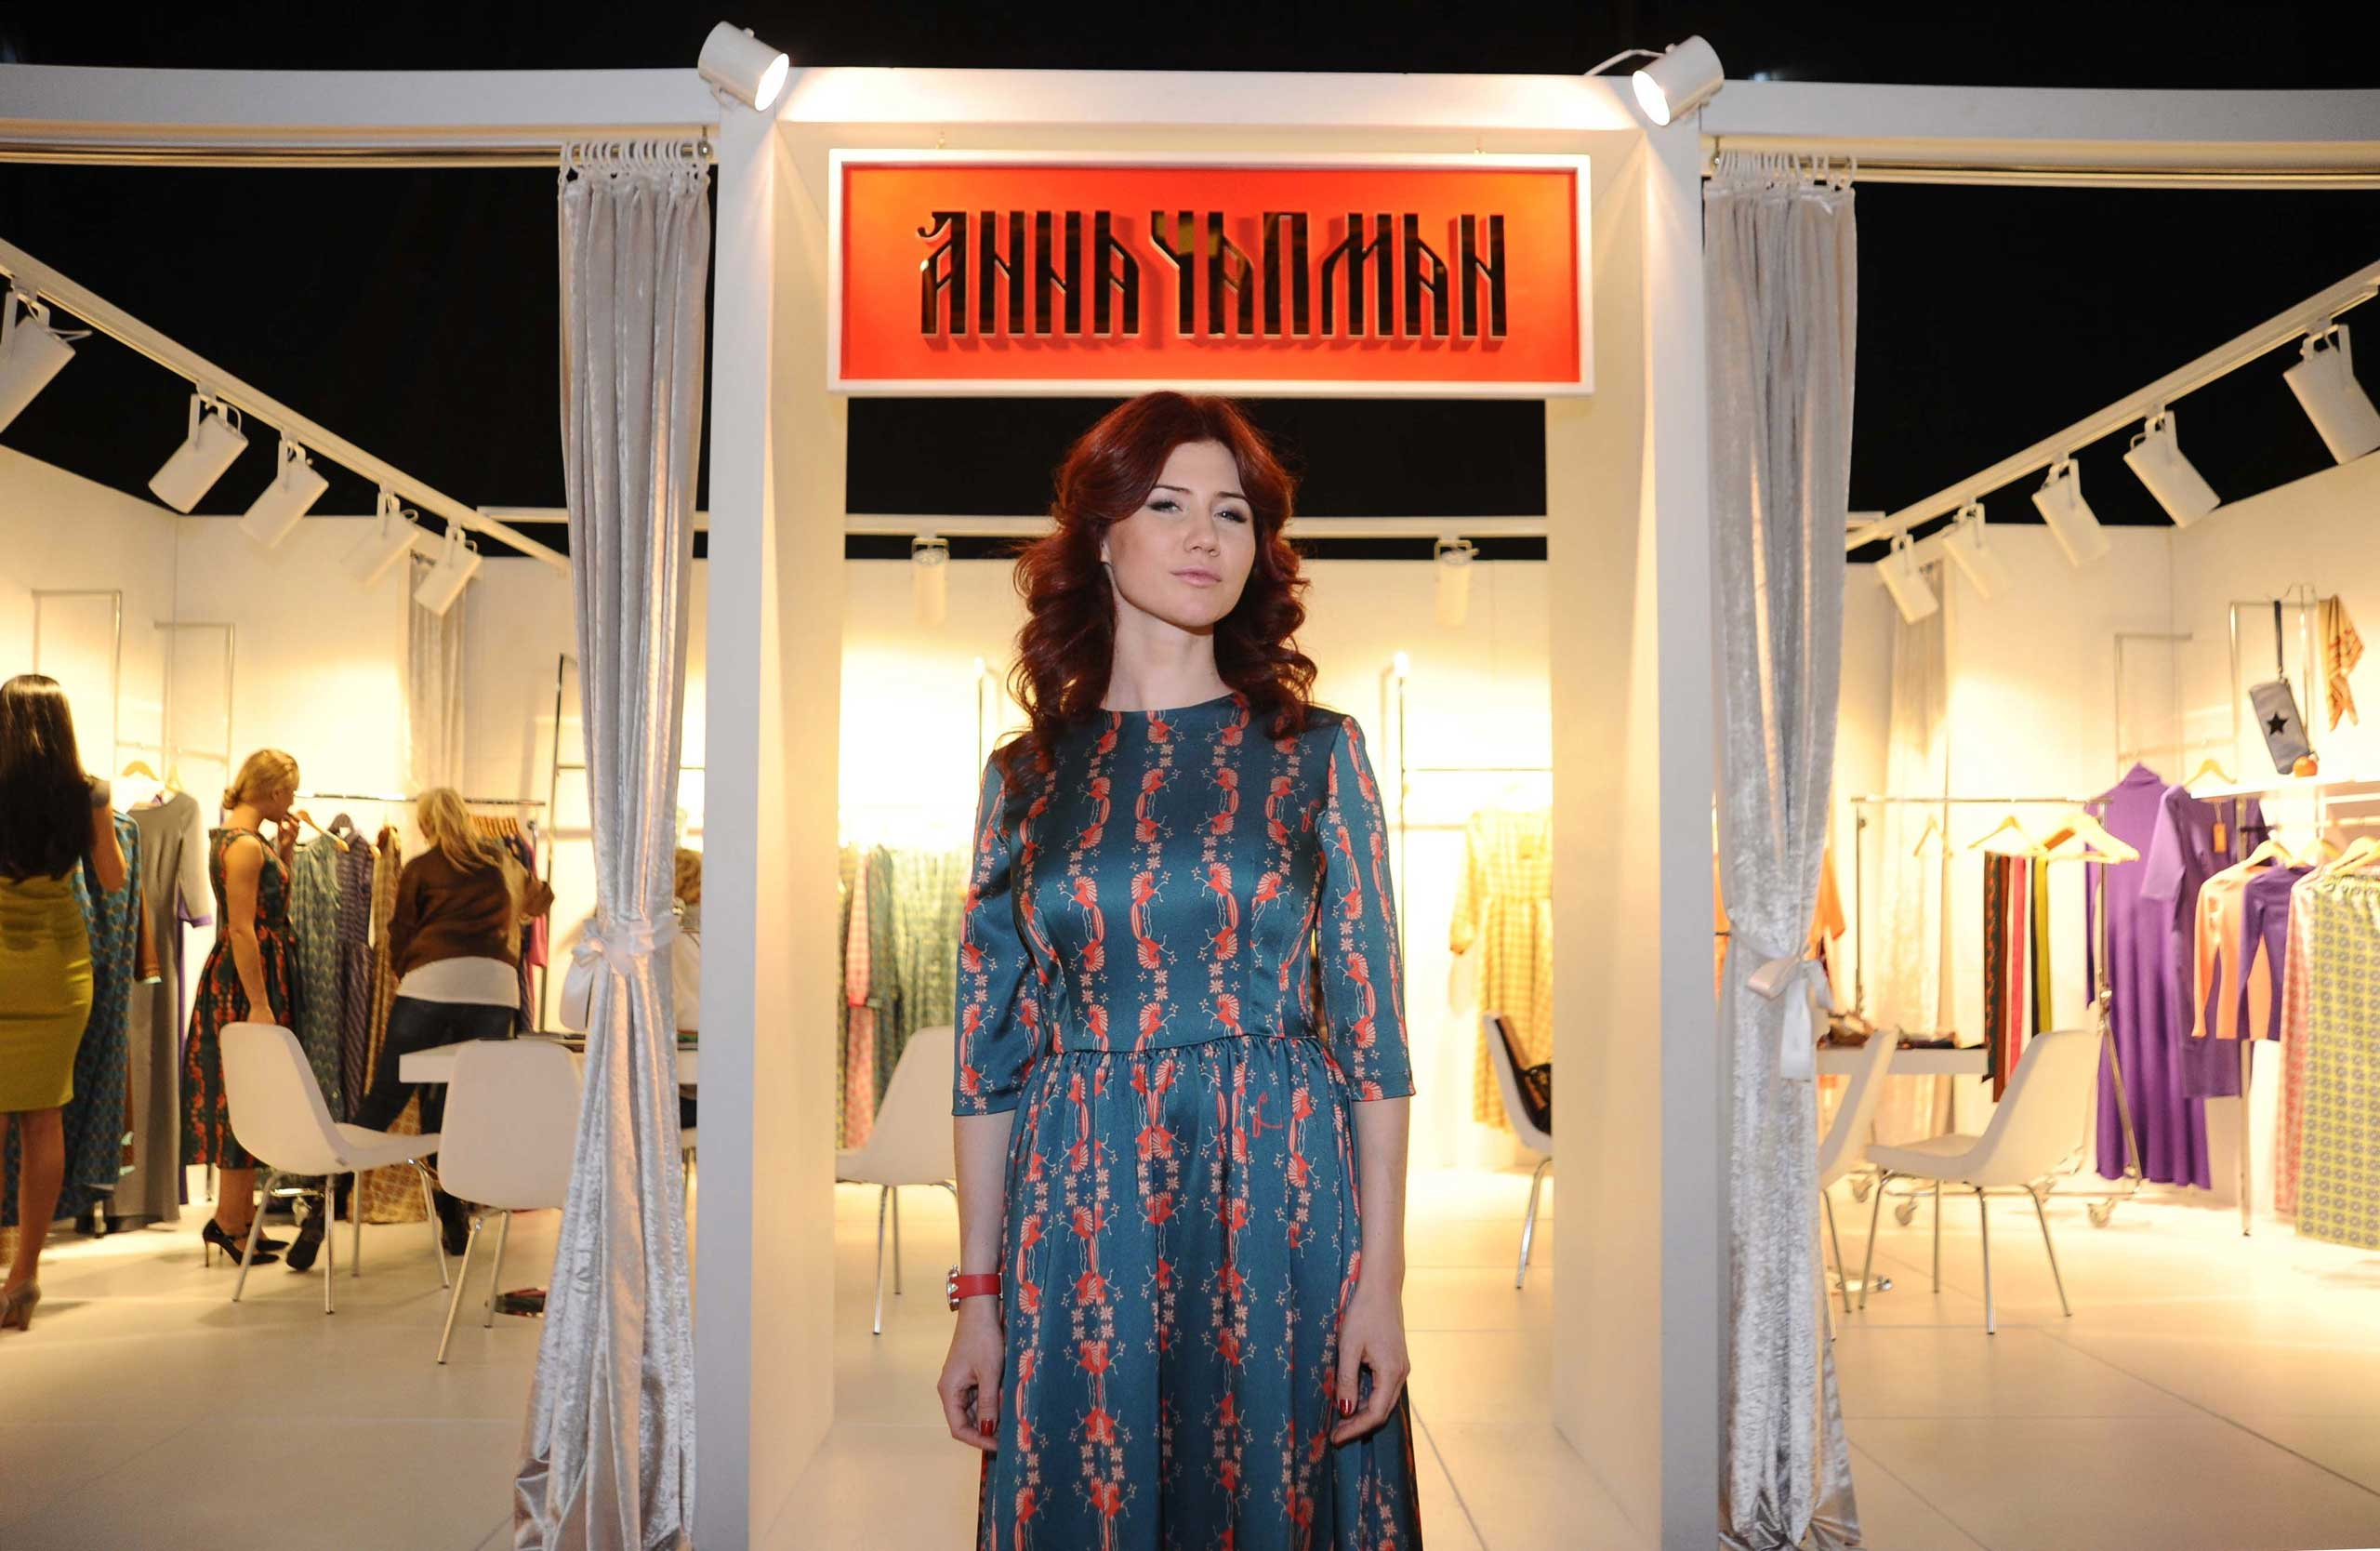 Former Russian spy Anna Chapman presents her own clothing line composed of 100 pieces at 17th Dosso Dossi Fashion Show on Jan. 11, 2014 in Antalya, Turkey.